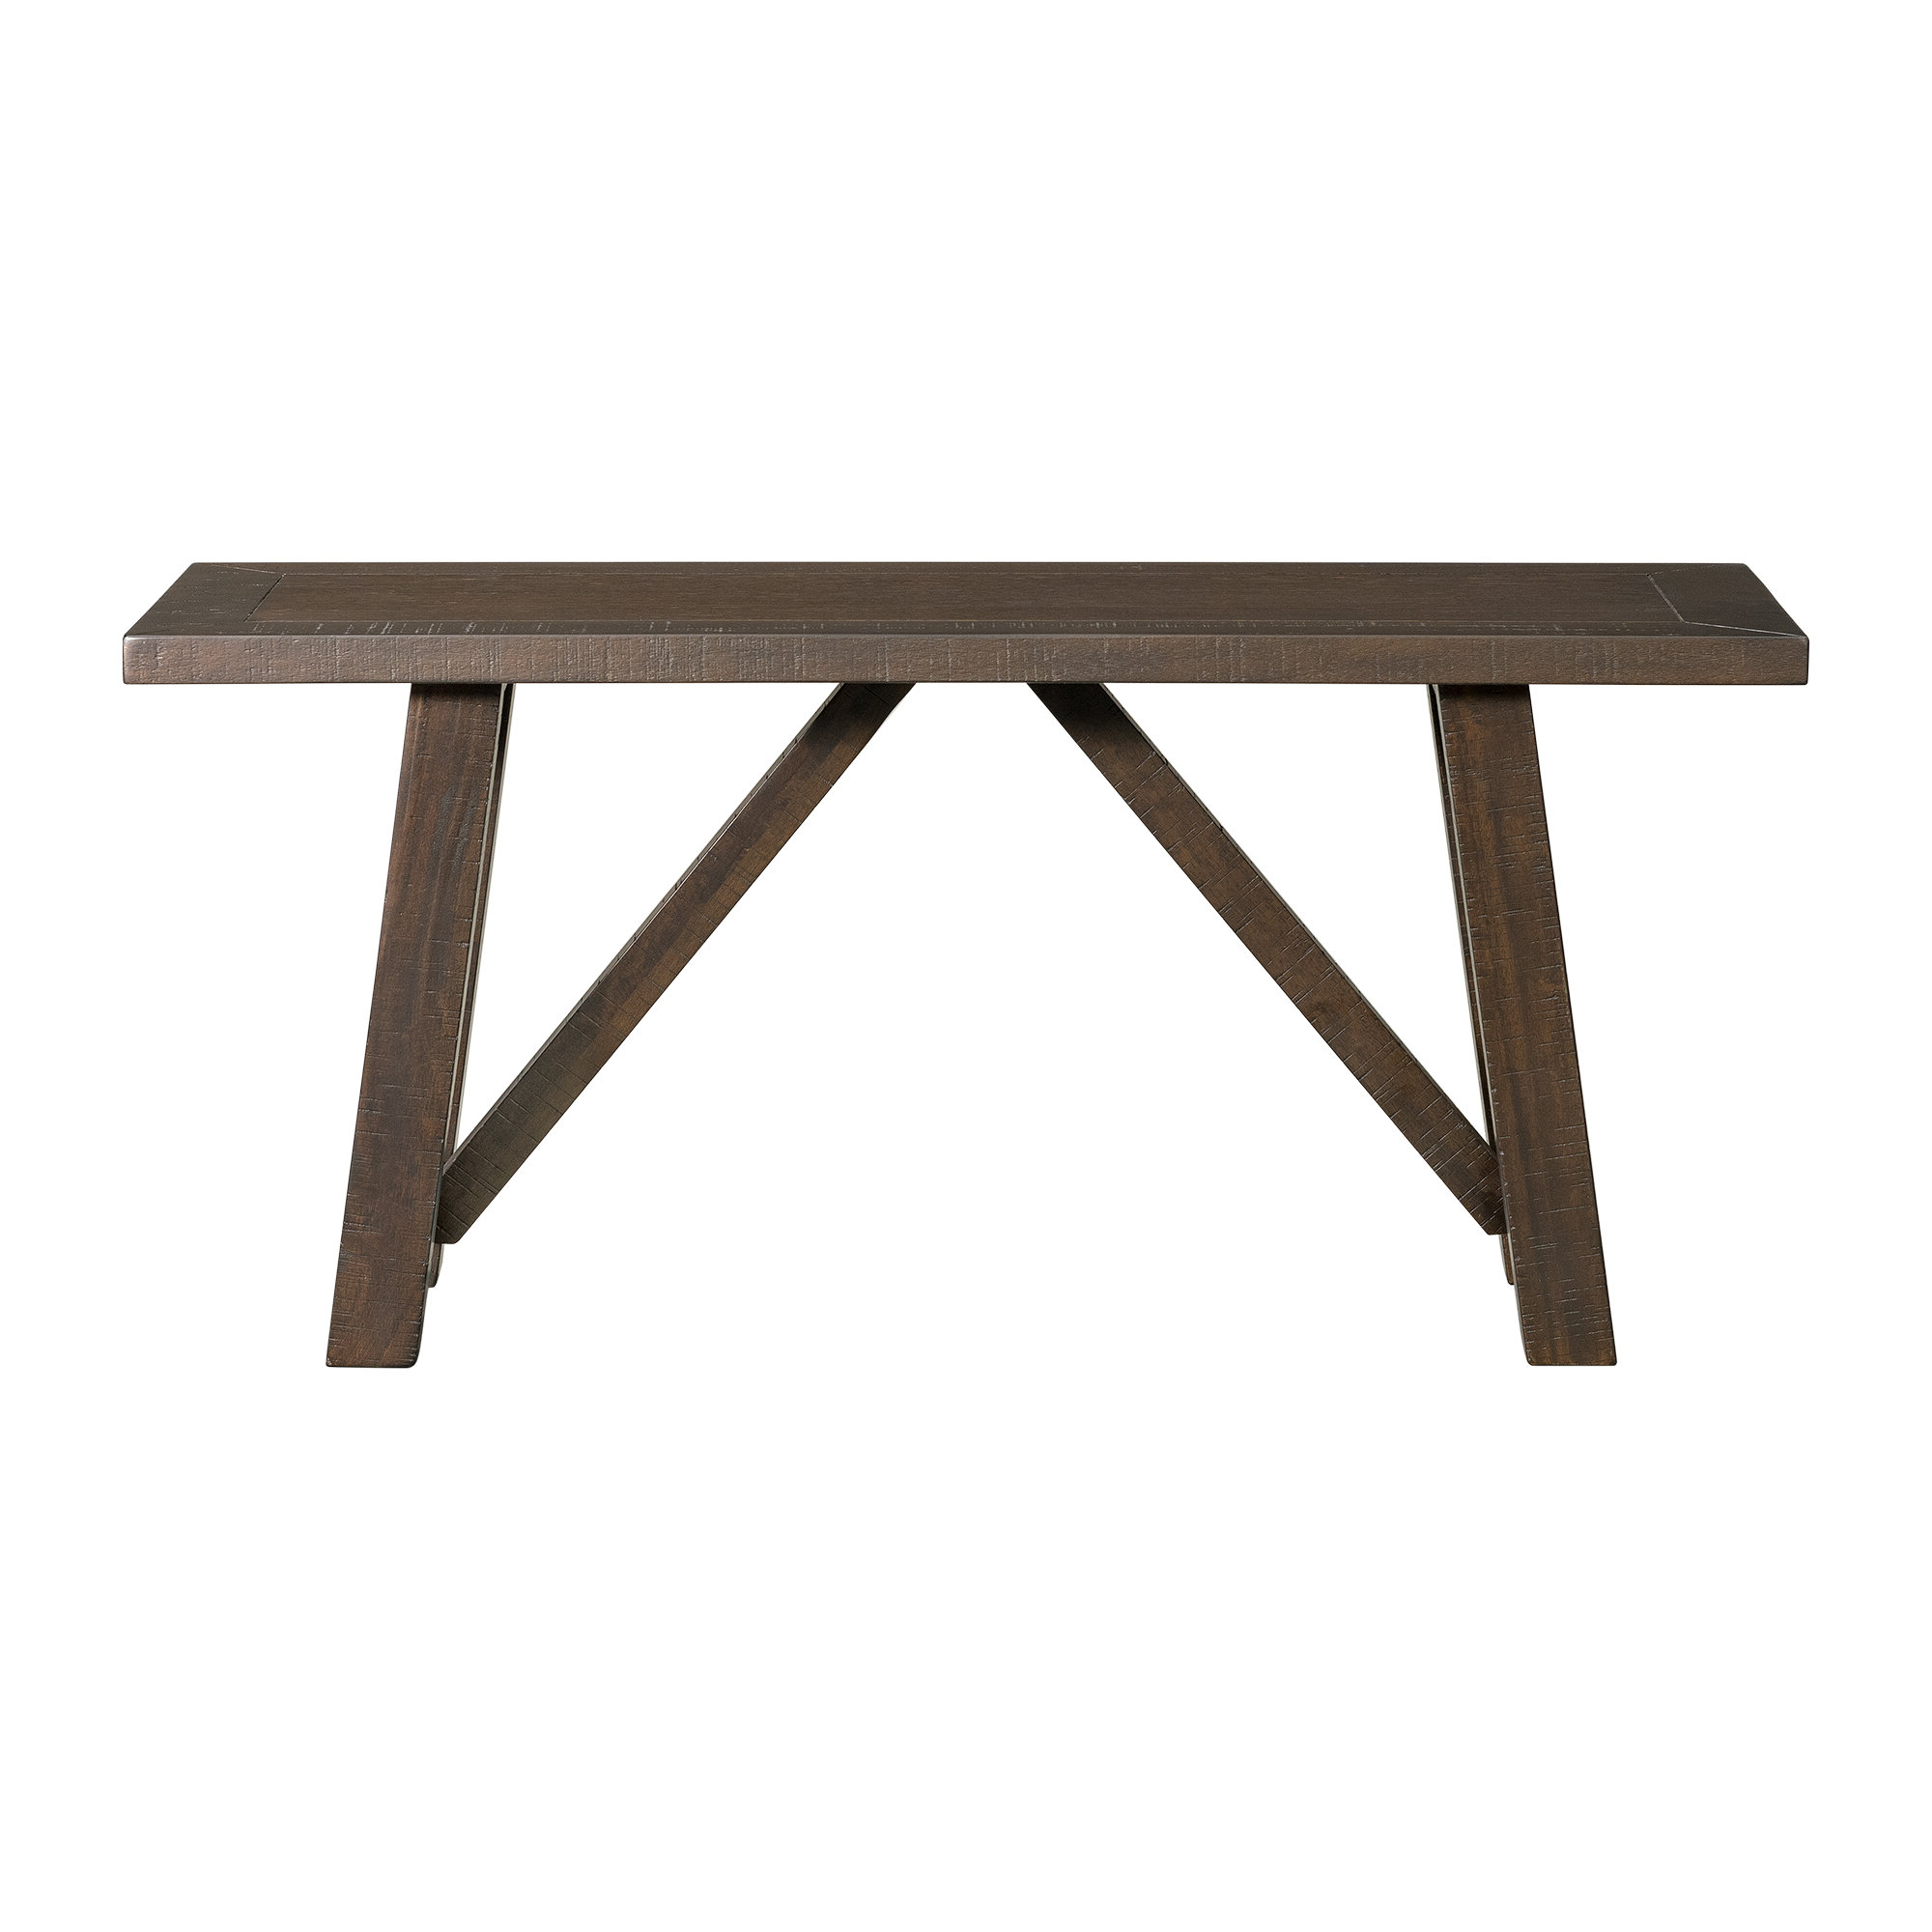 Furniture Online Pertaining To Alfon Wood Garden Benches (View 29 of 30)